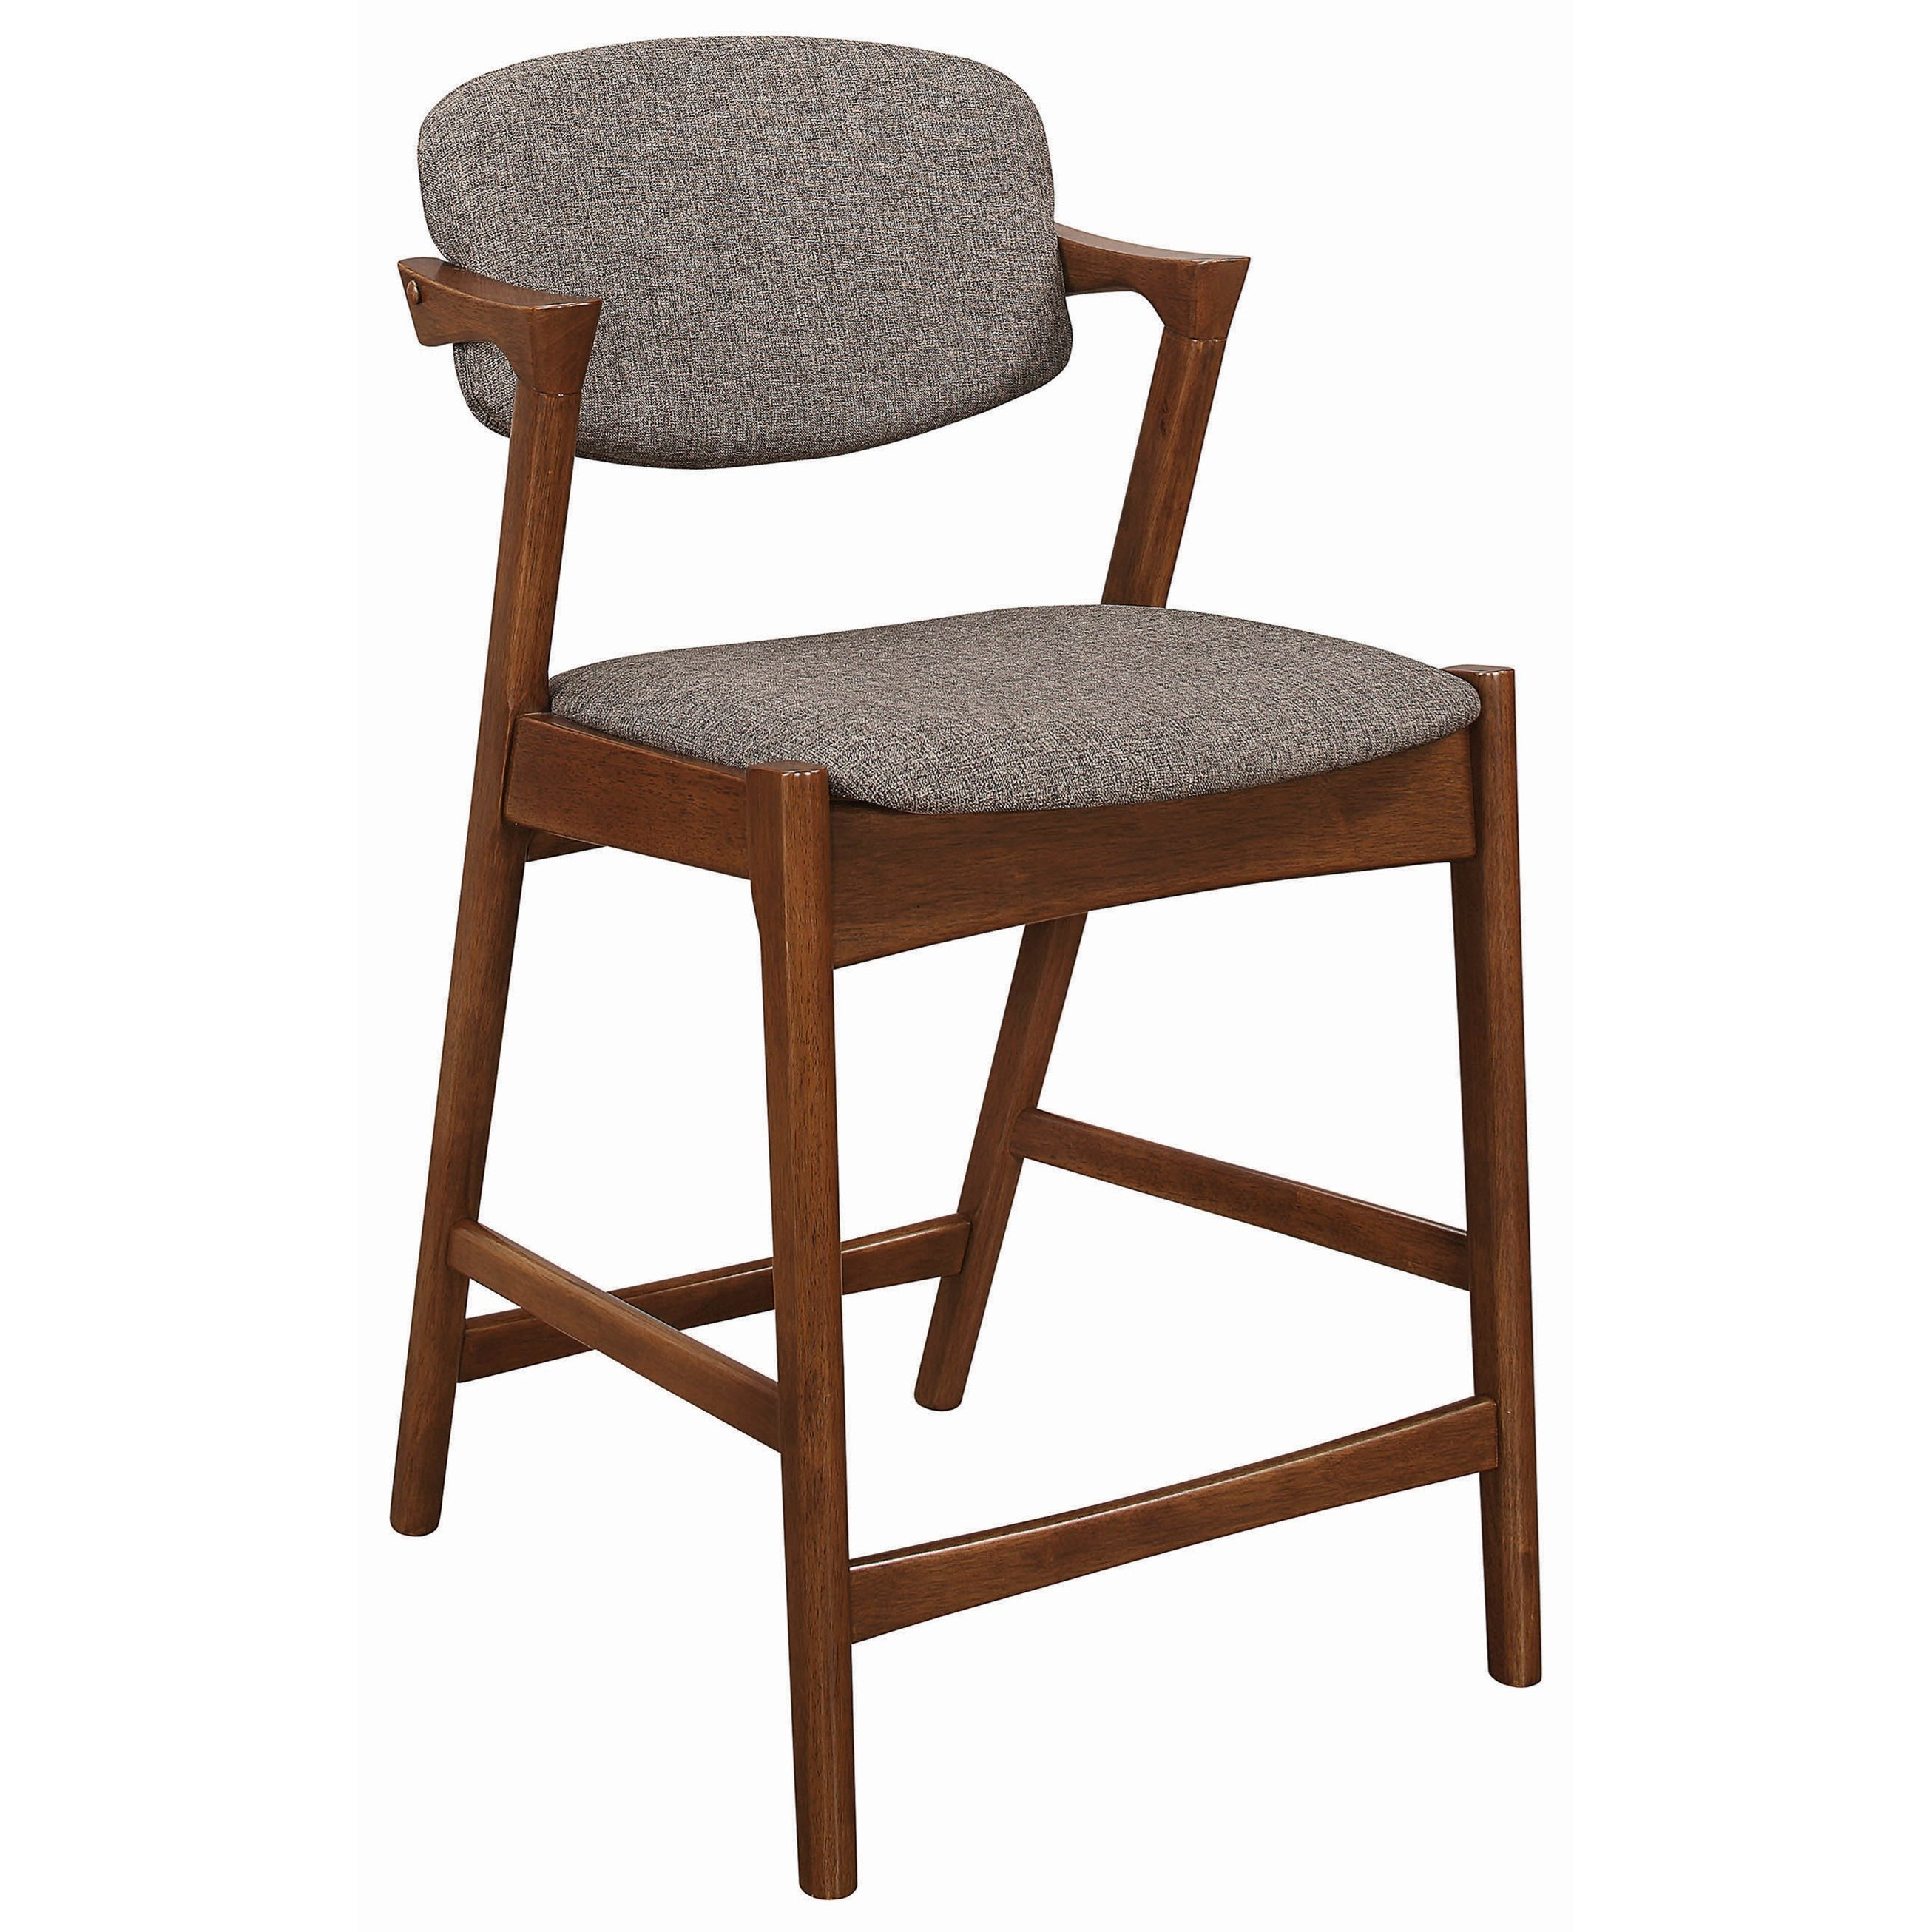 upholstered counter chairs kids kmart coaster dining and bar stools mid century modern stoolscounter height stool